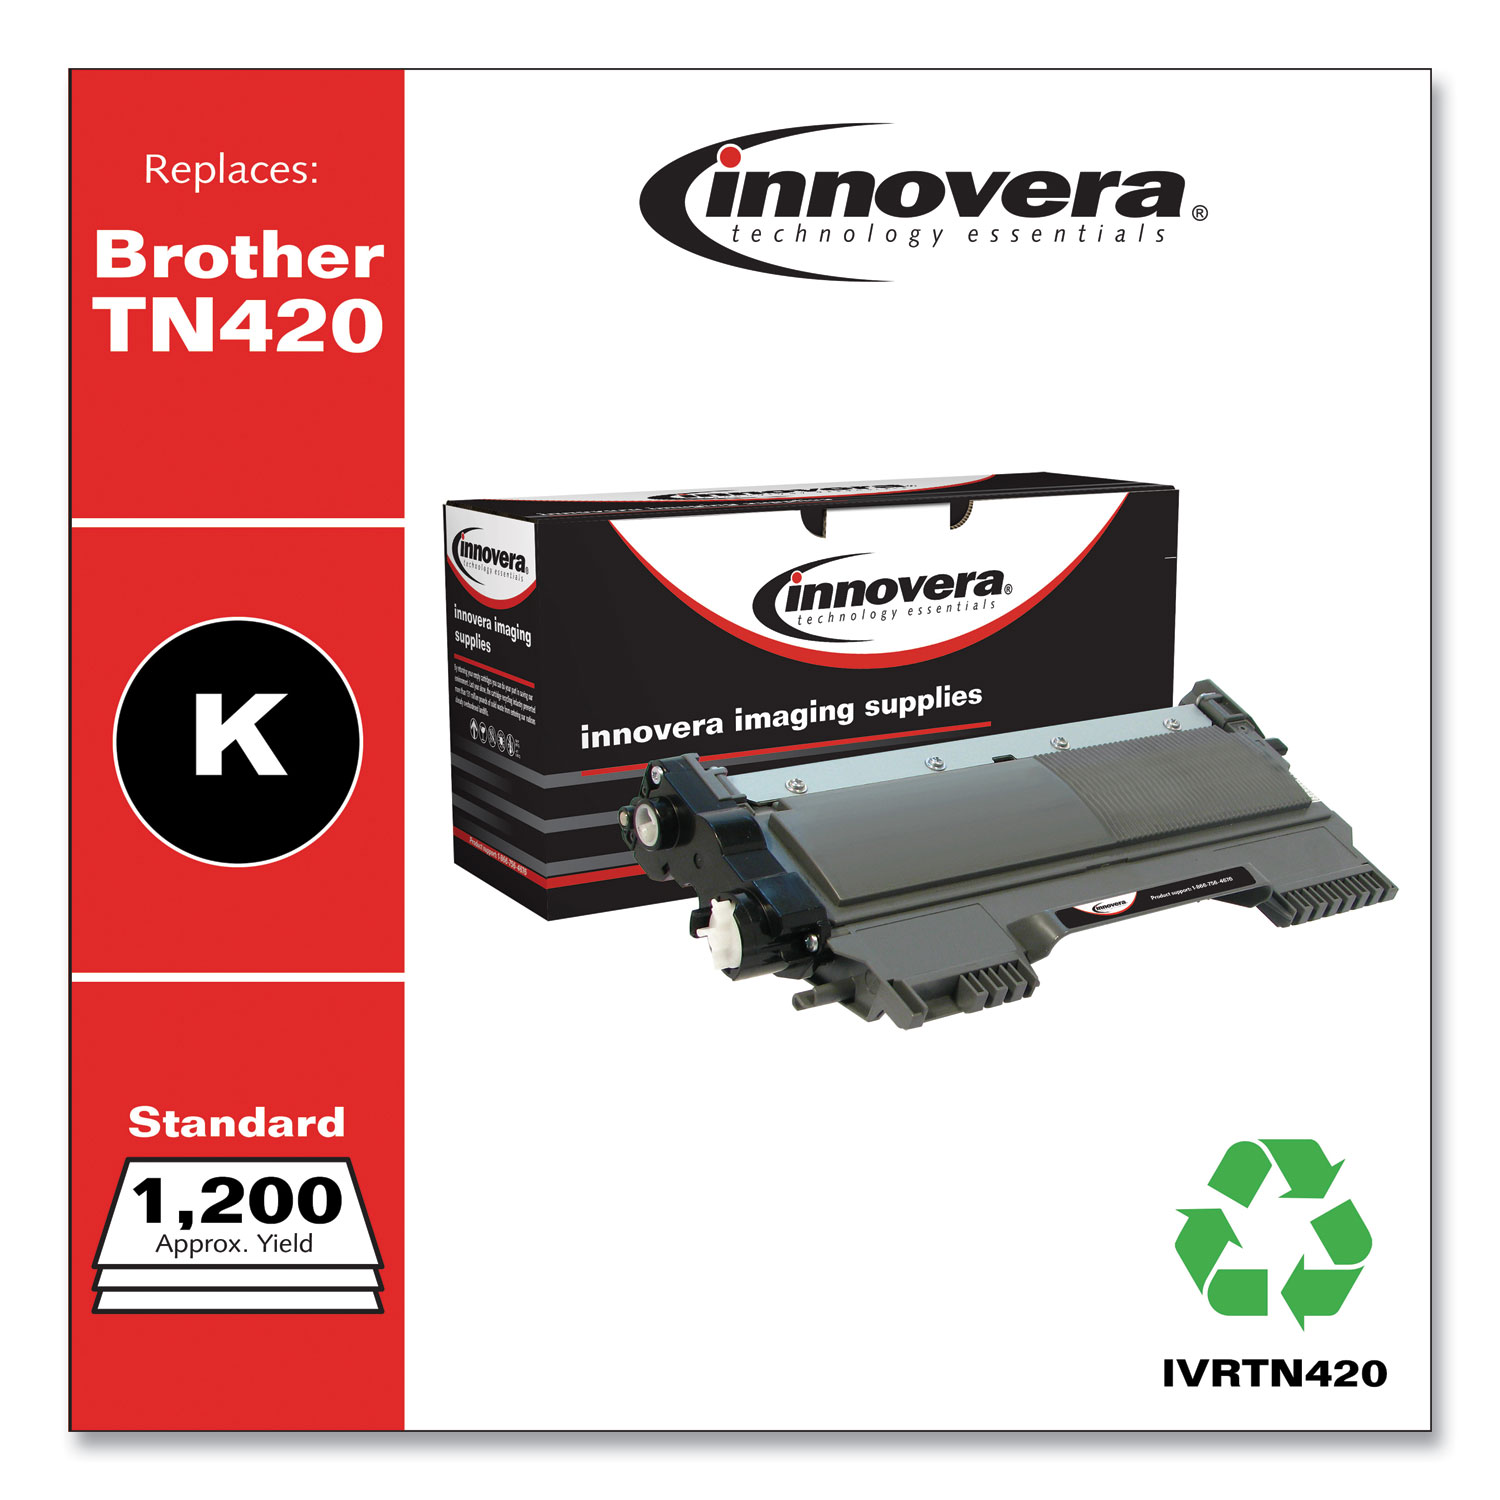 Remanufactured Black Toner Cartridge, Replacement for Brother TN420, 1,200 Page-Yield